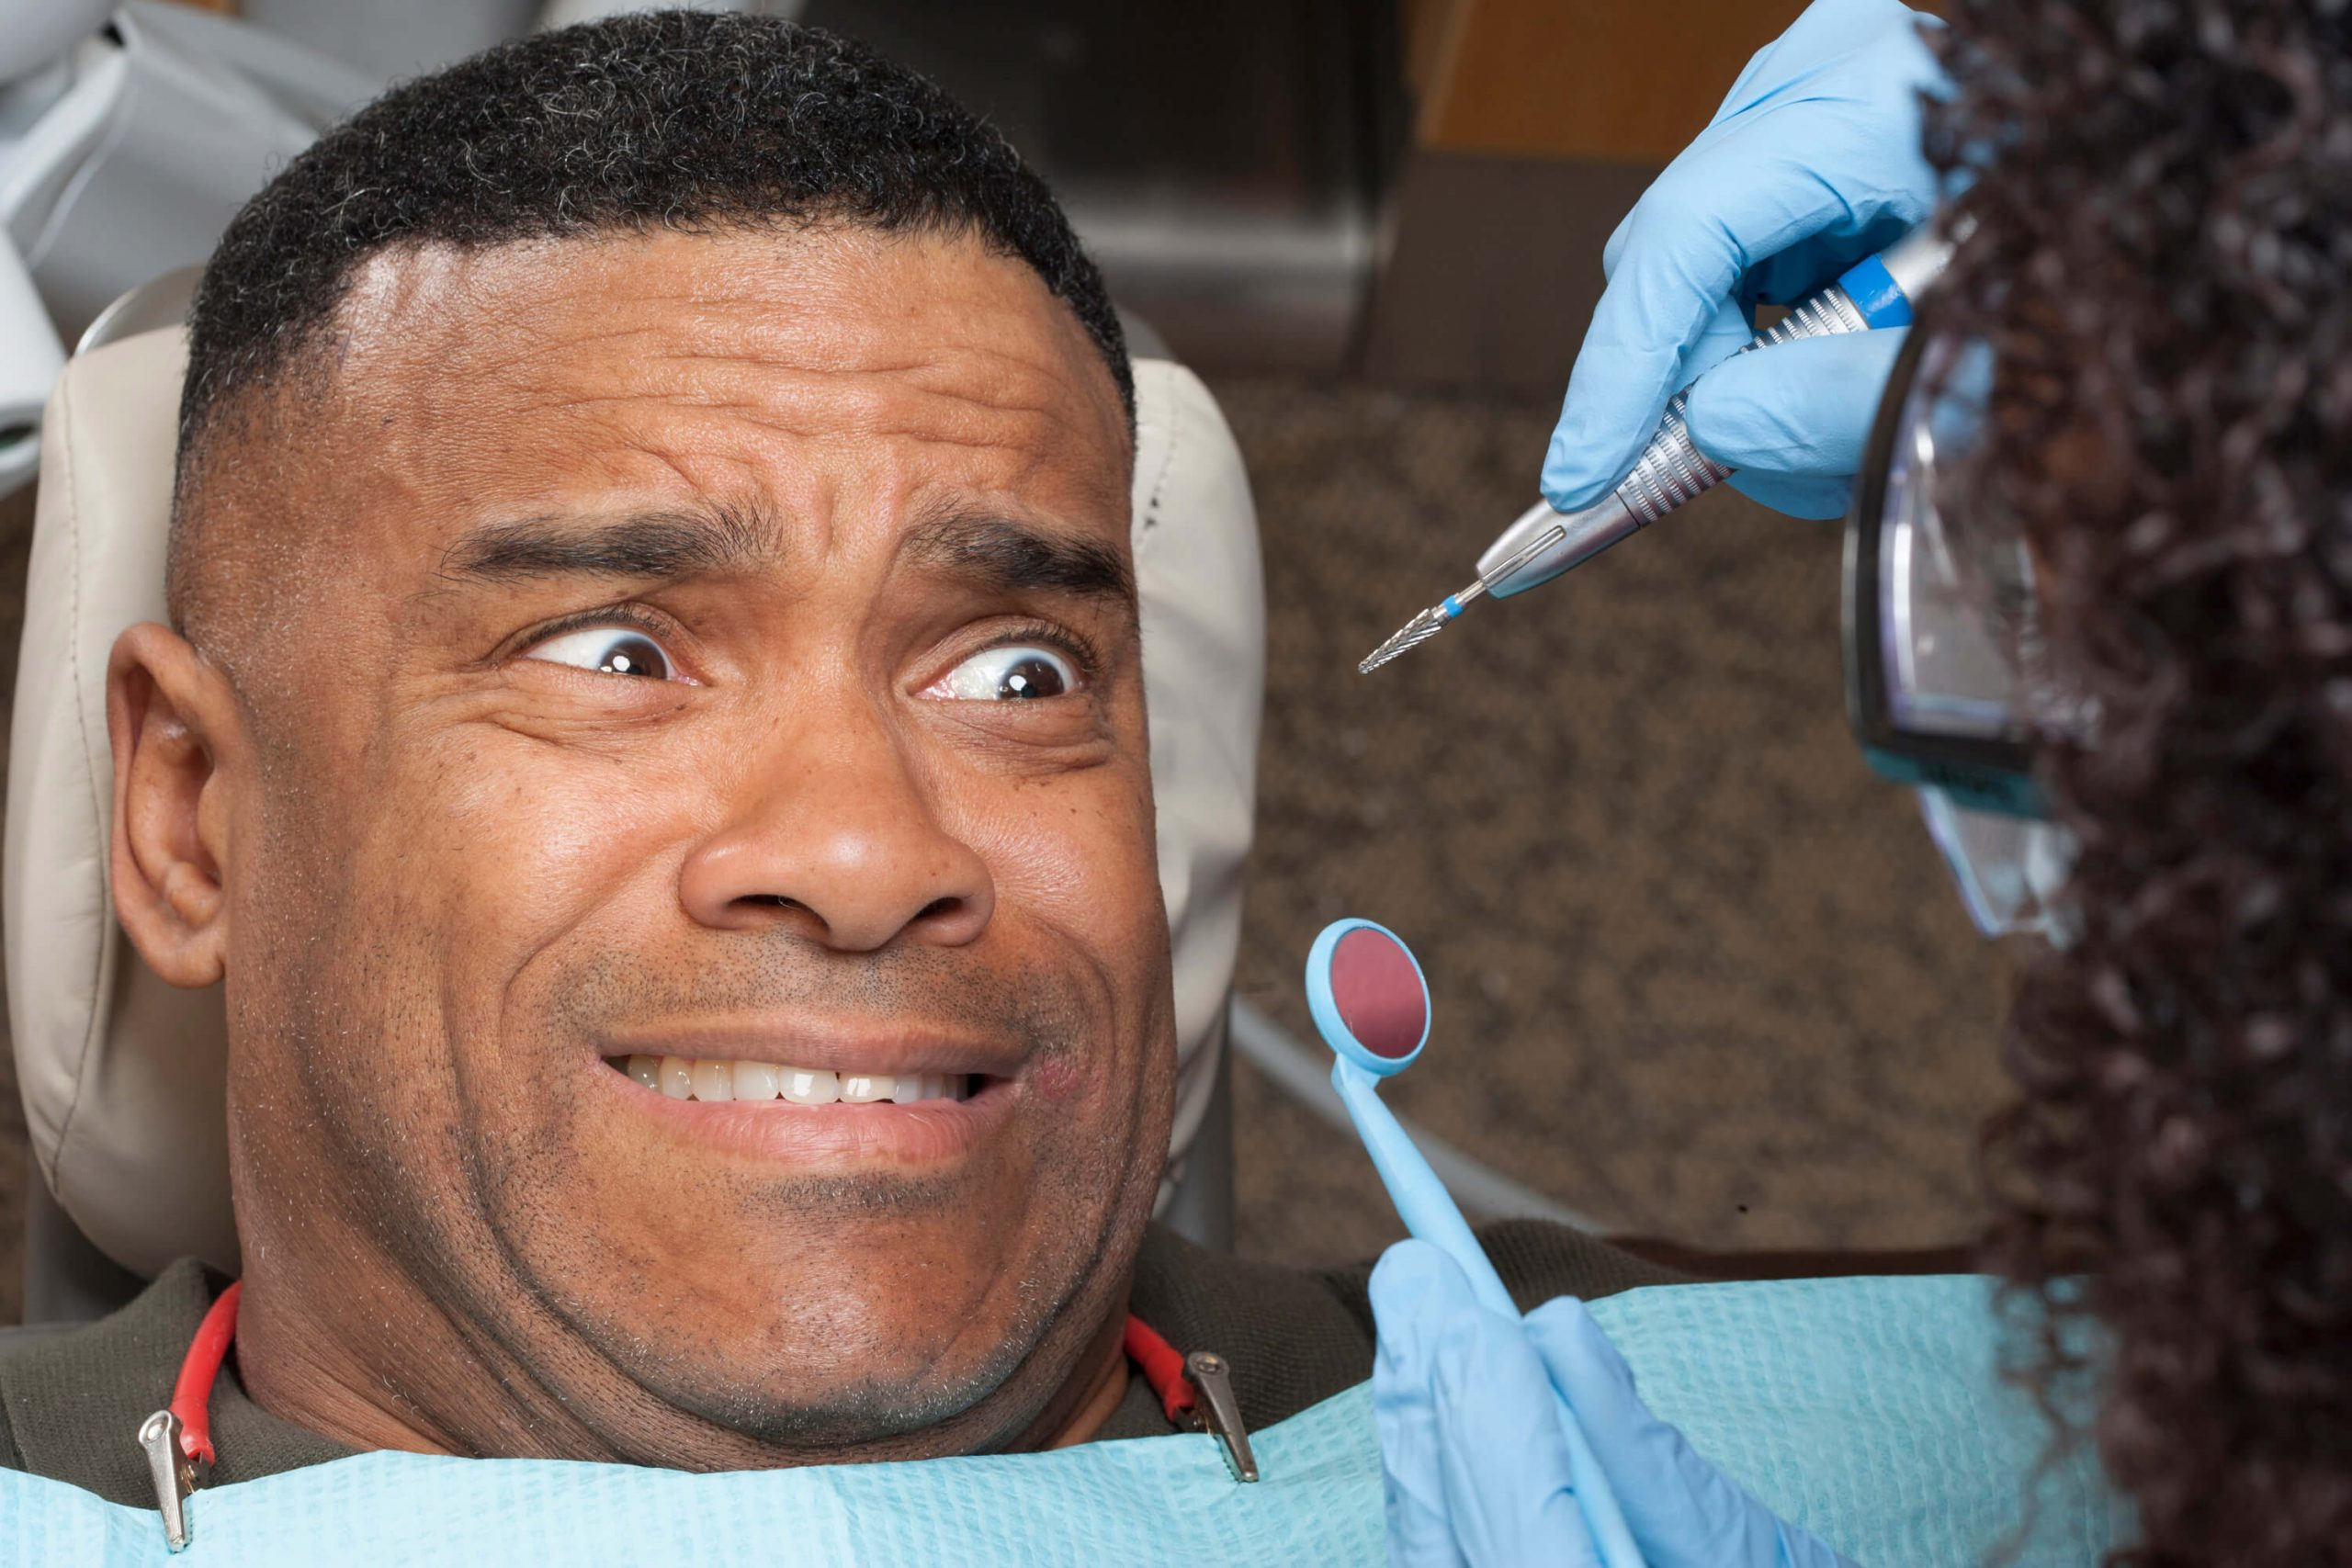 5 Tips To Prevent Anxiety When Going To The Dentist